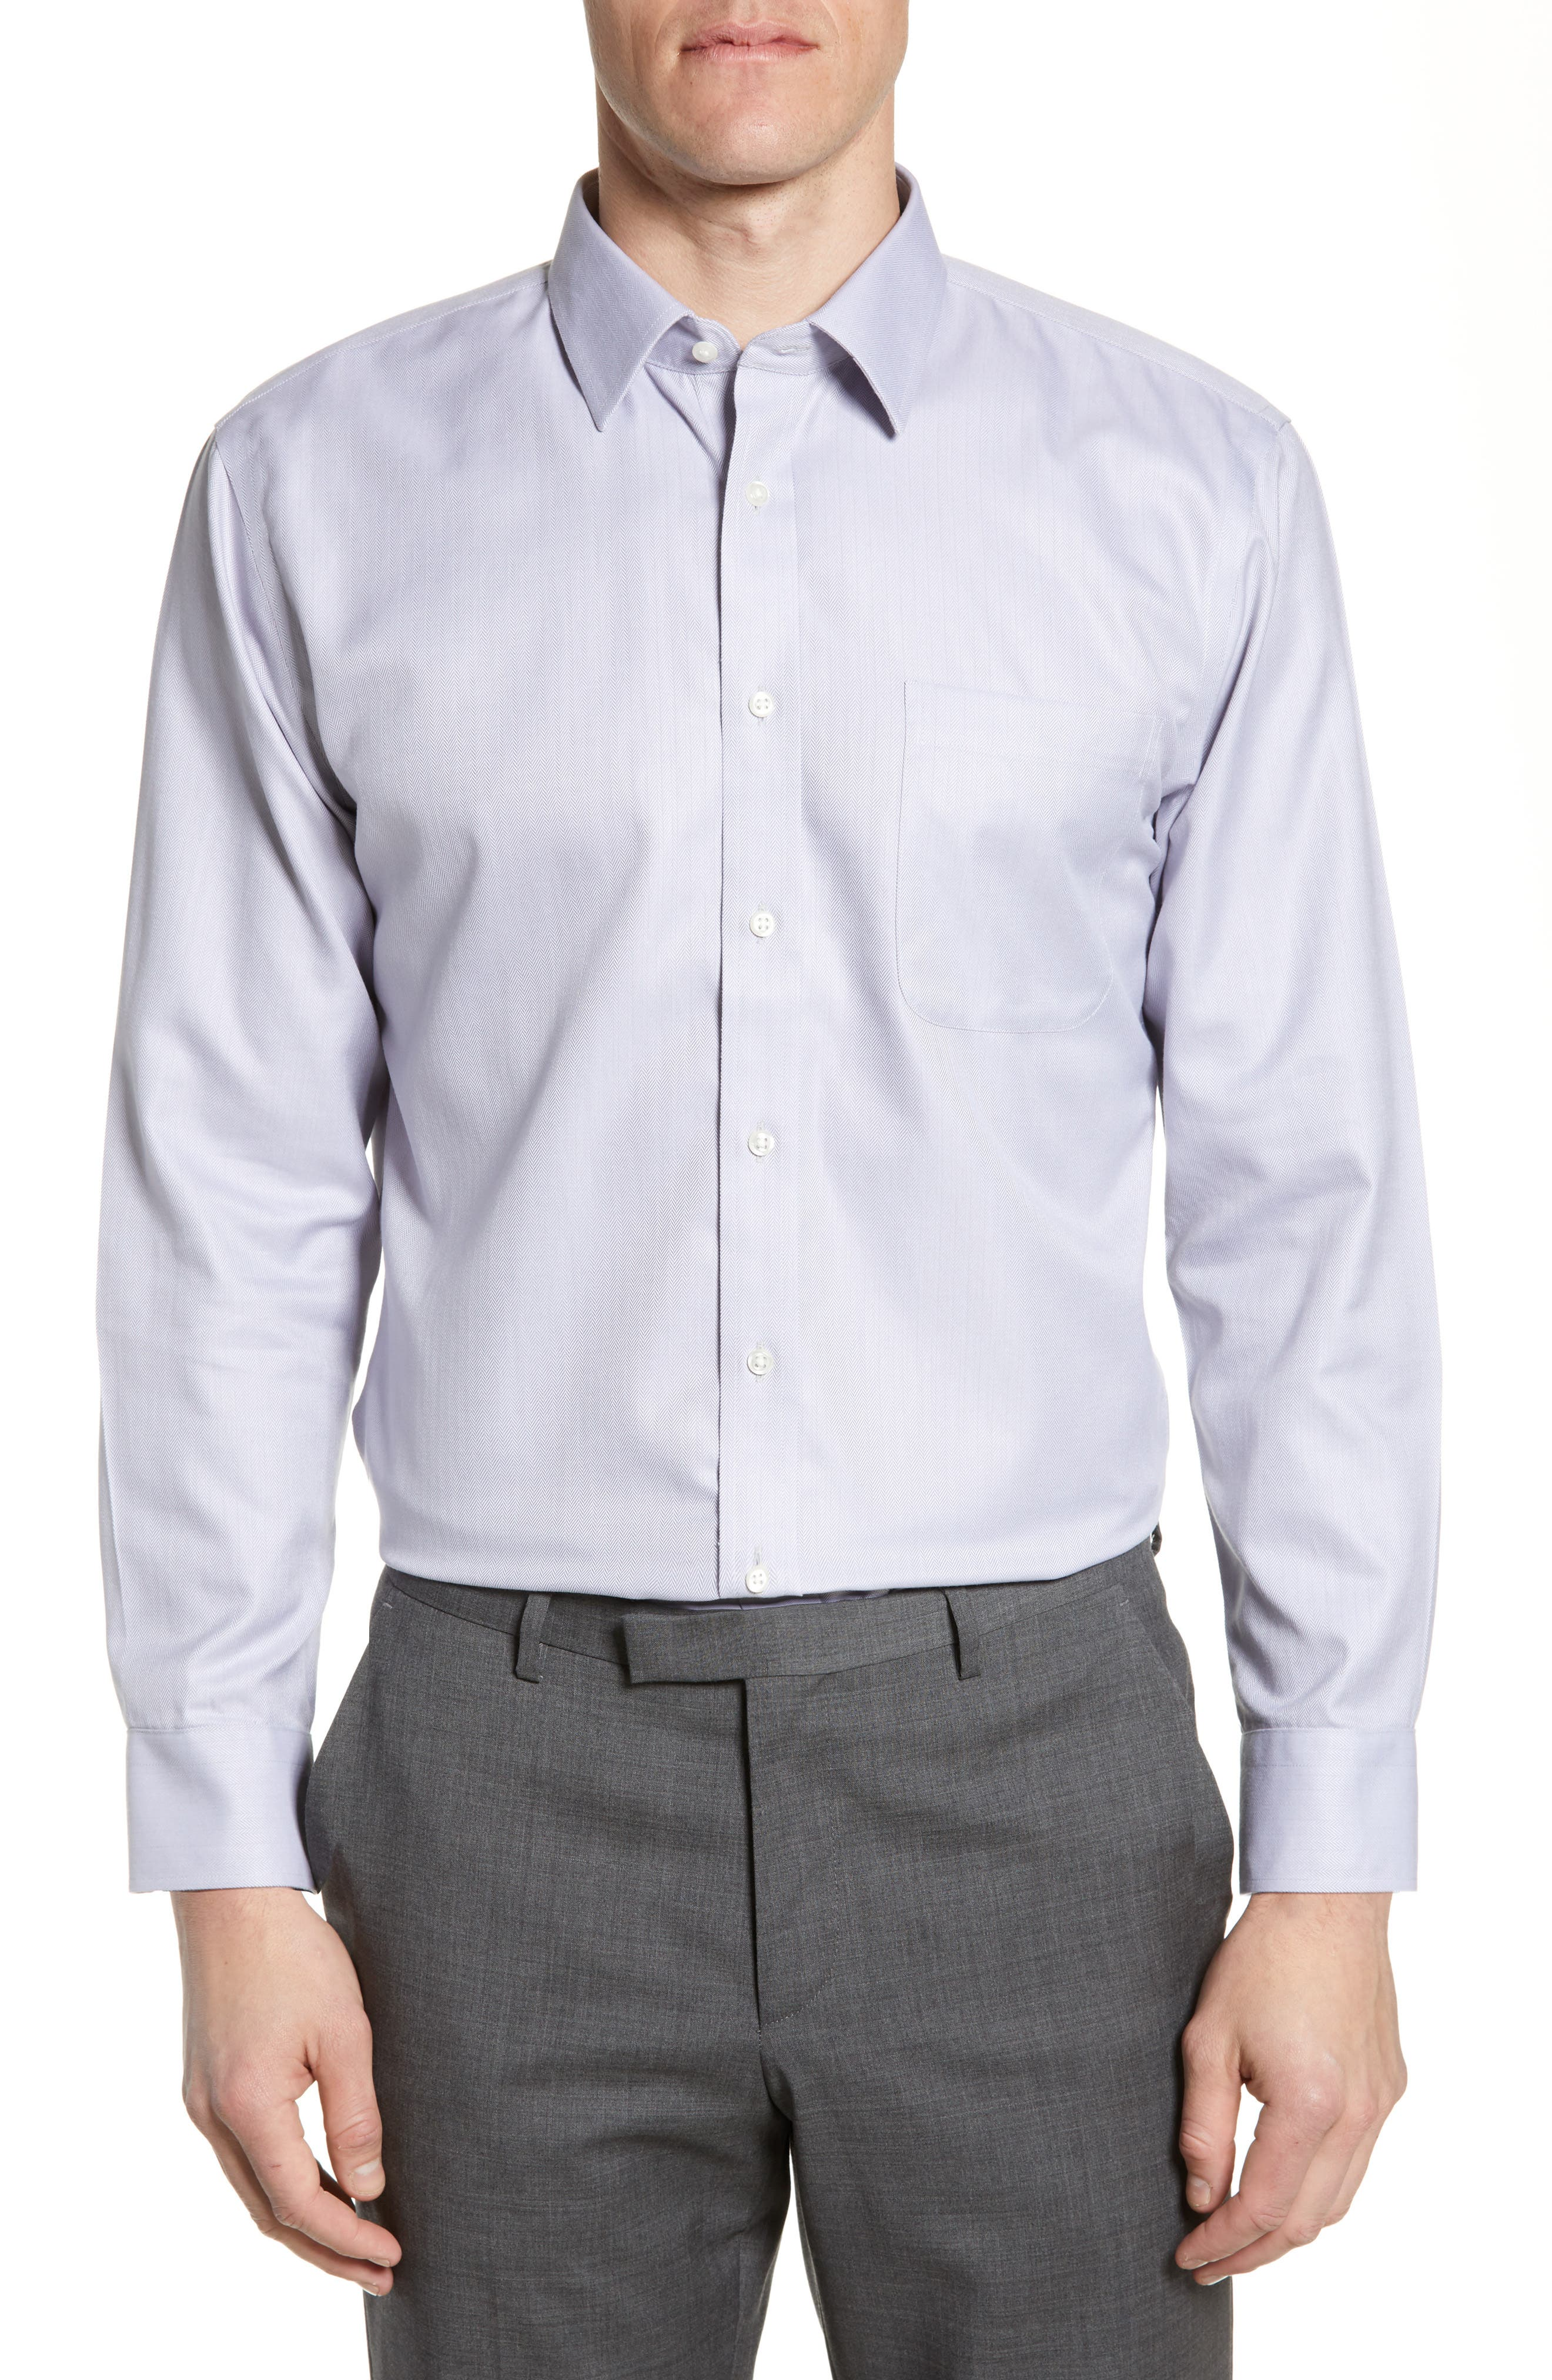 NORDSTROM MEN'S SHOP Smartcare<sup>™</sup> Trim Fit Herringbone Dress Shirt, Main, color, GREY DECEMBER